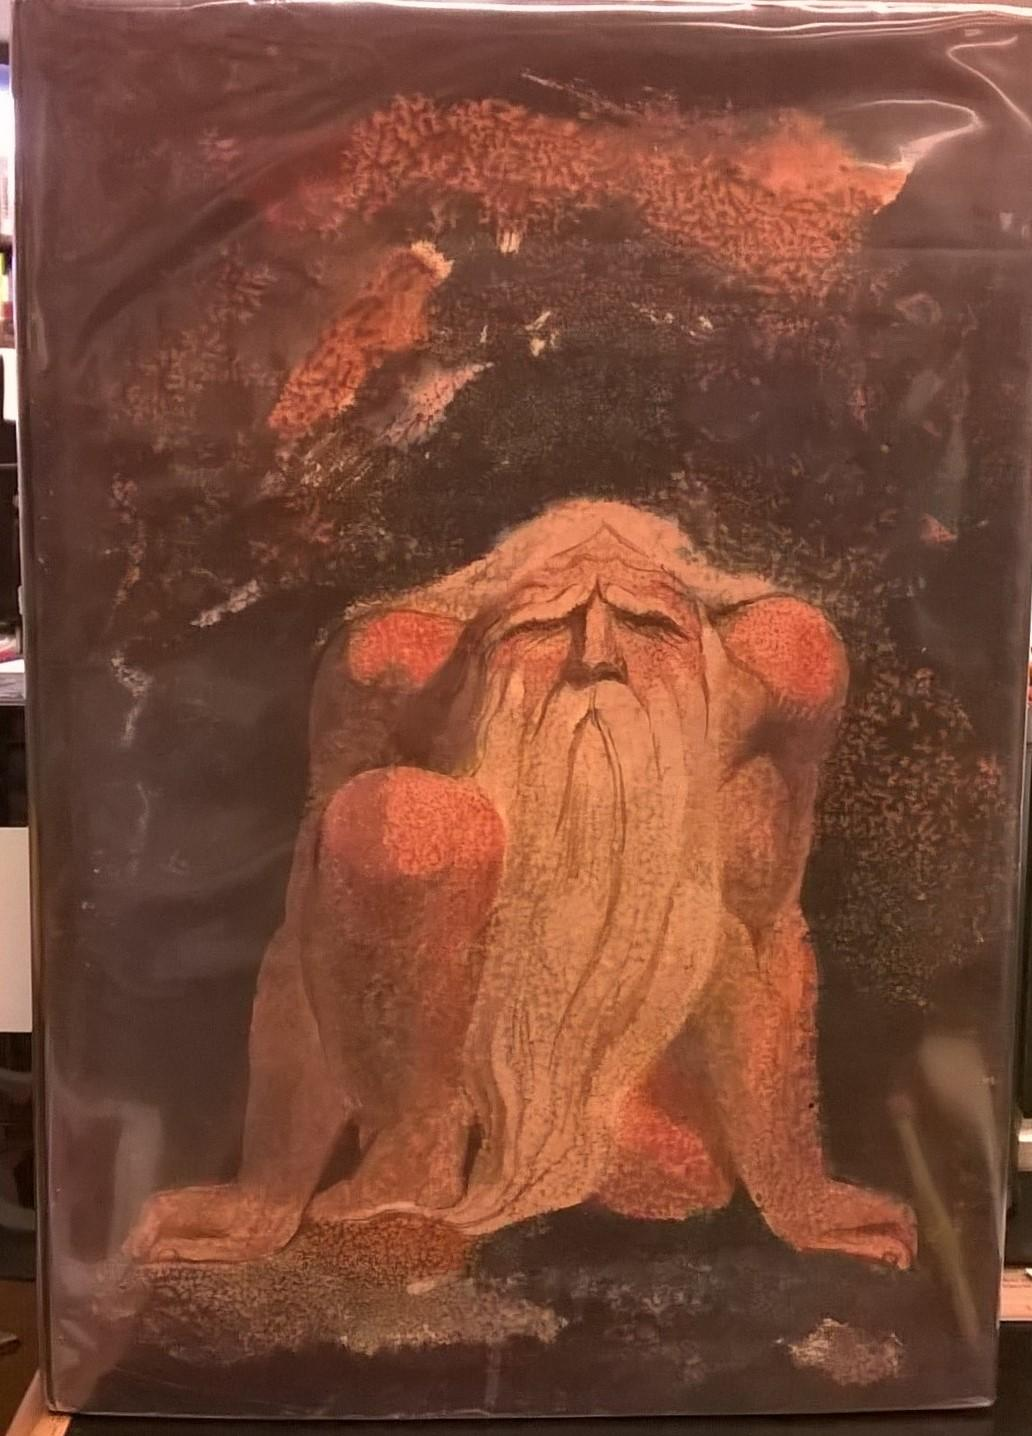 The Urizen Books: The First Book of Urizen; The Book of Ahania; The Book of Los (Blake's Illuminated Books, Volume 6) - William Blake